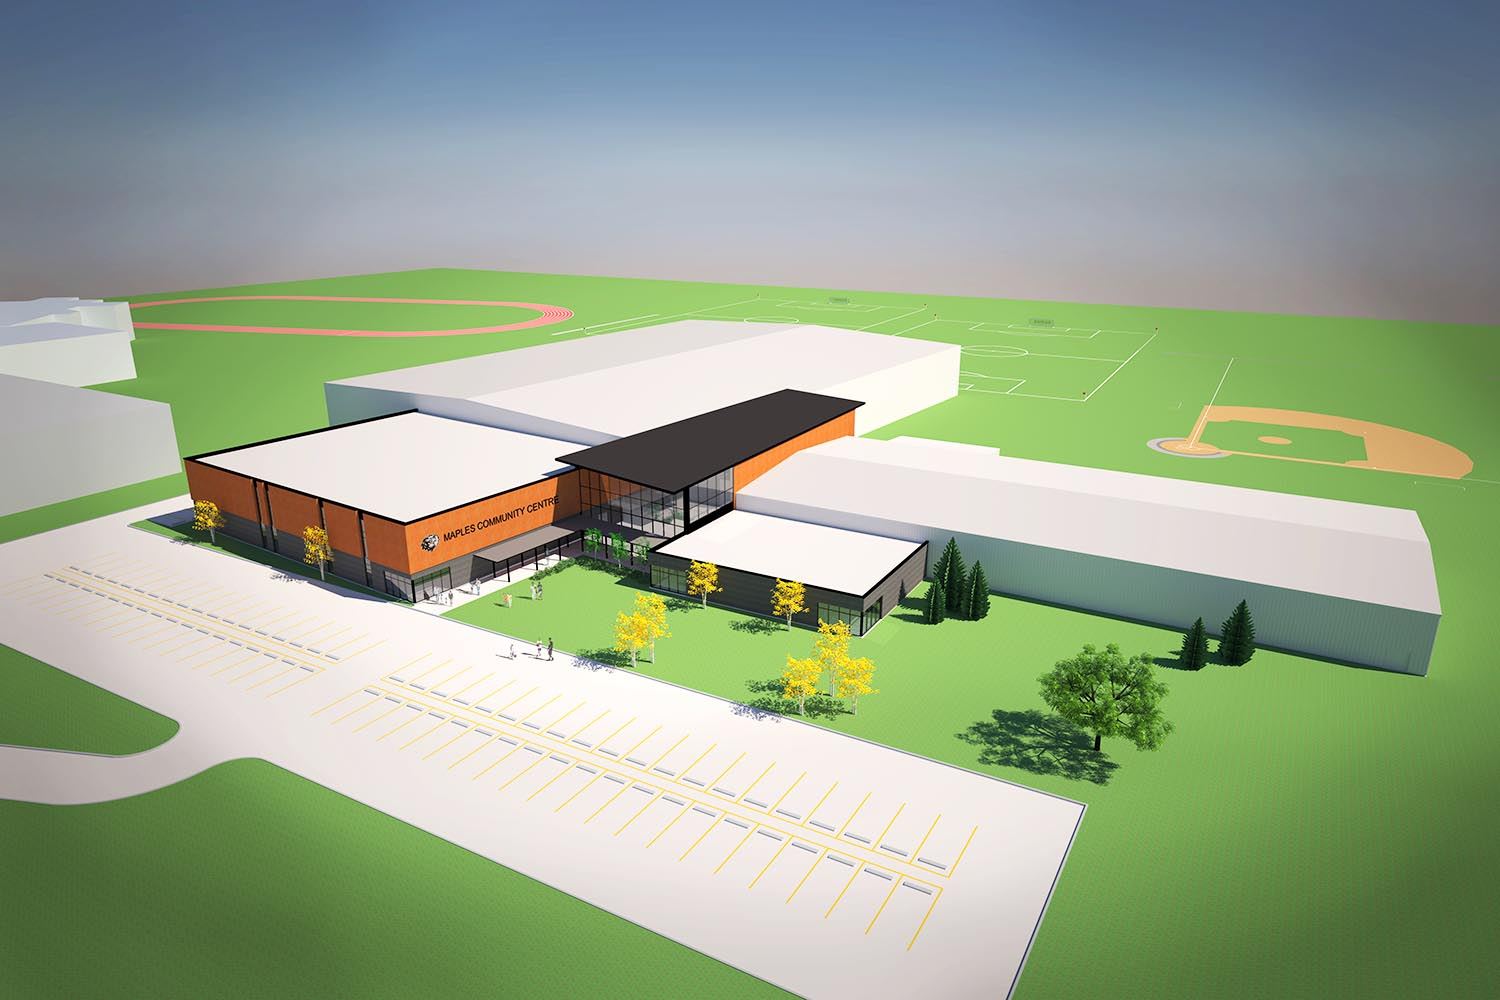 Maples Community Centre, exterior aerial rendering